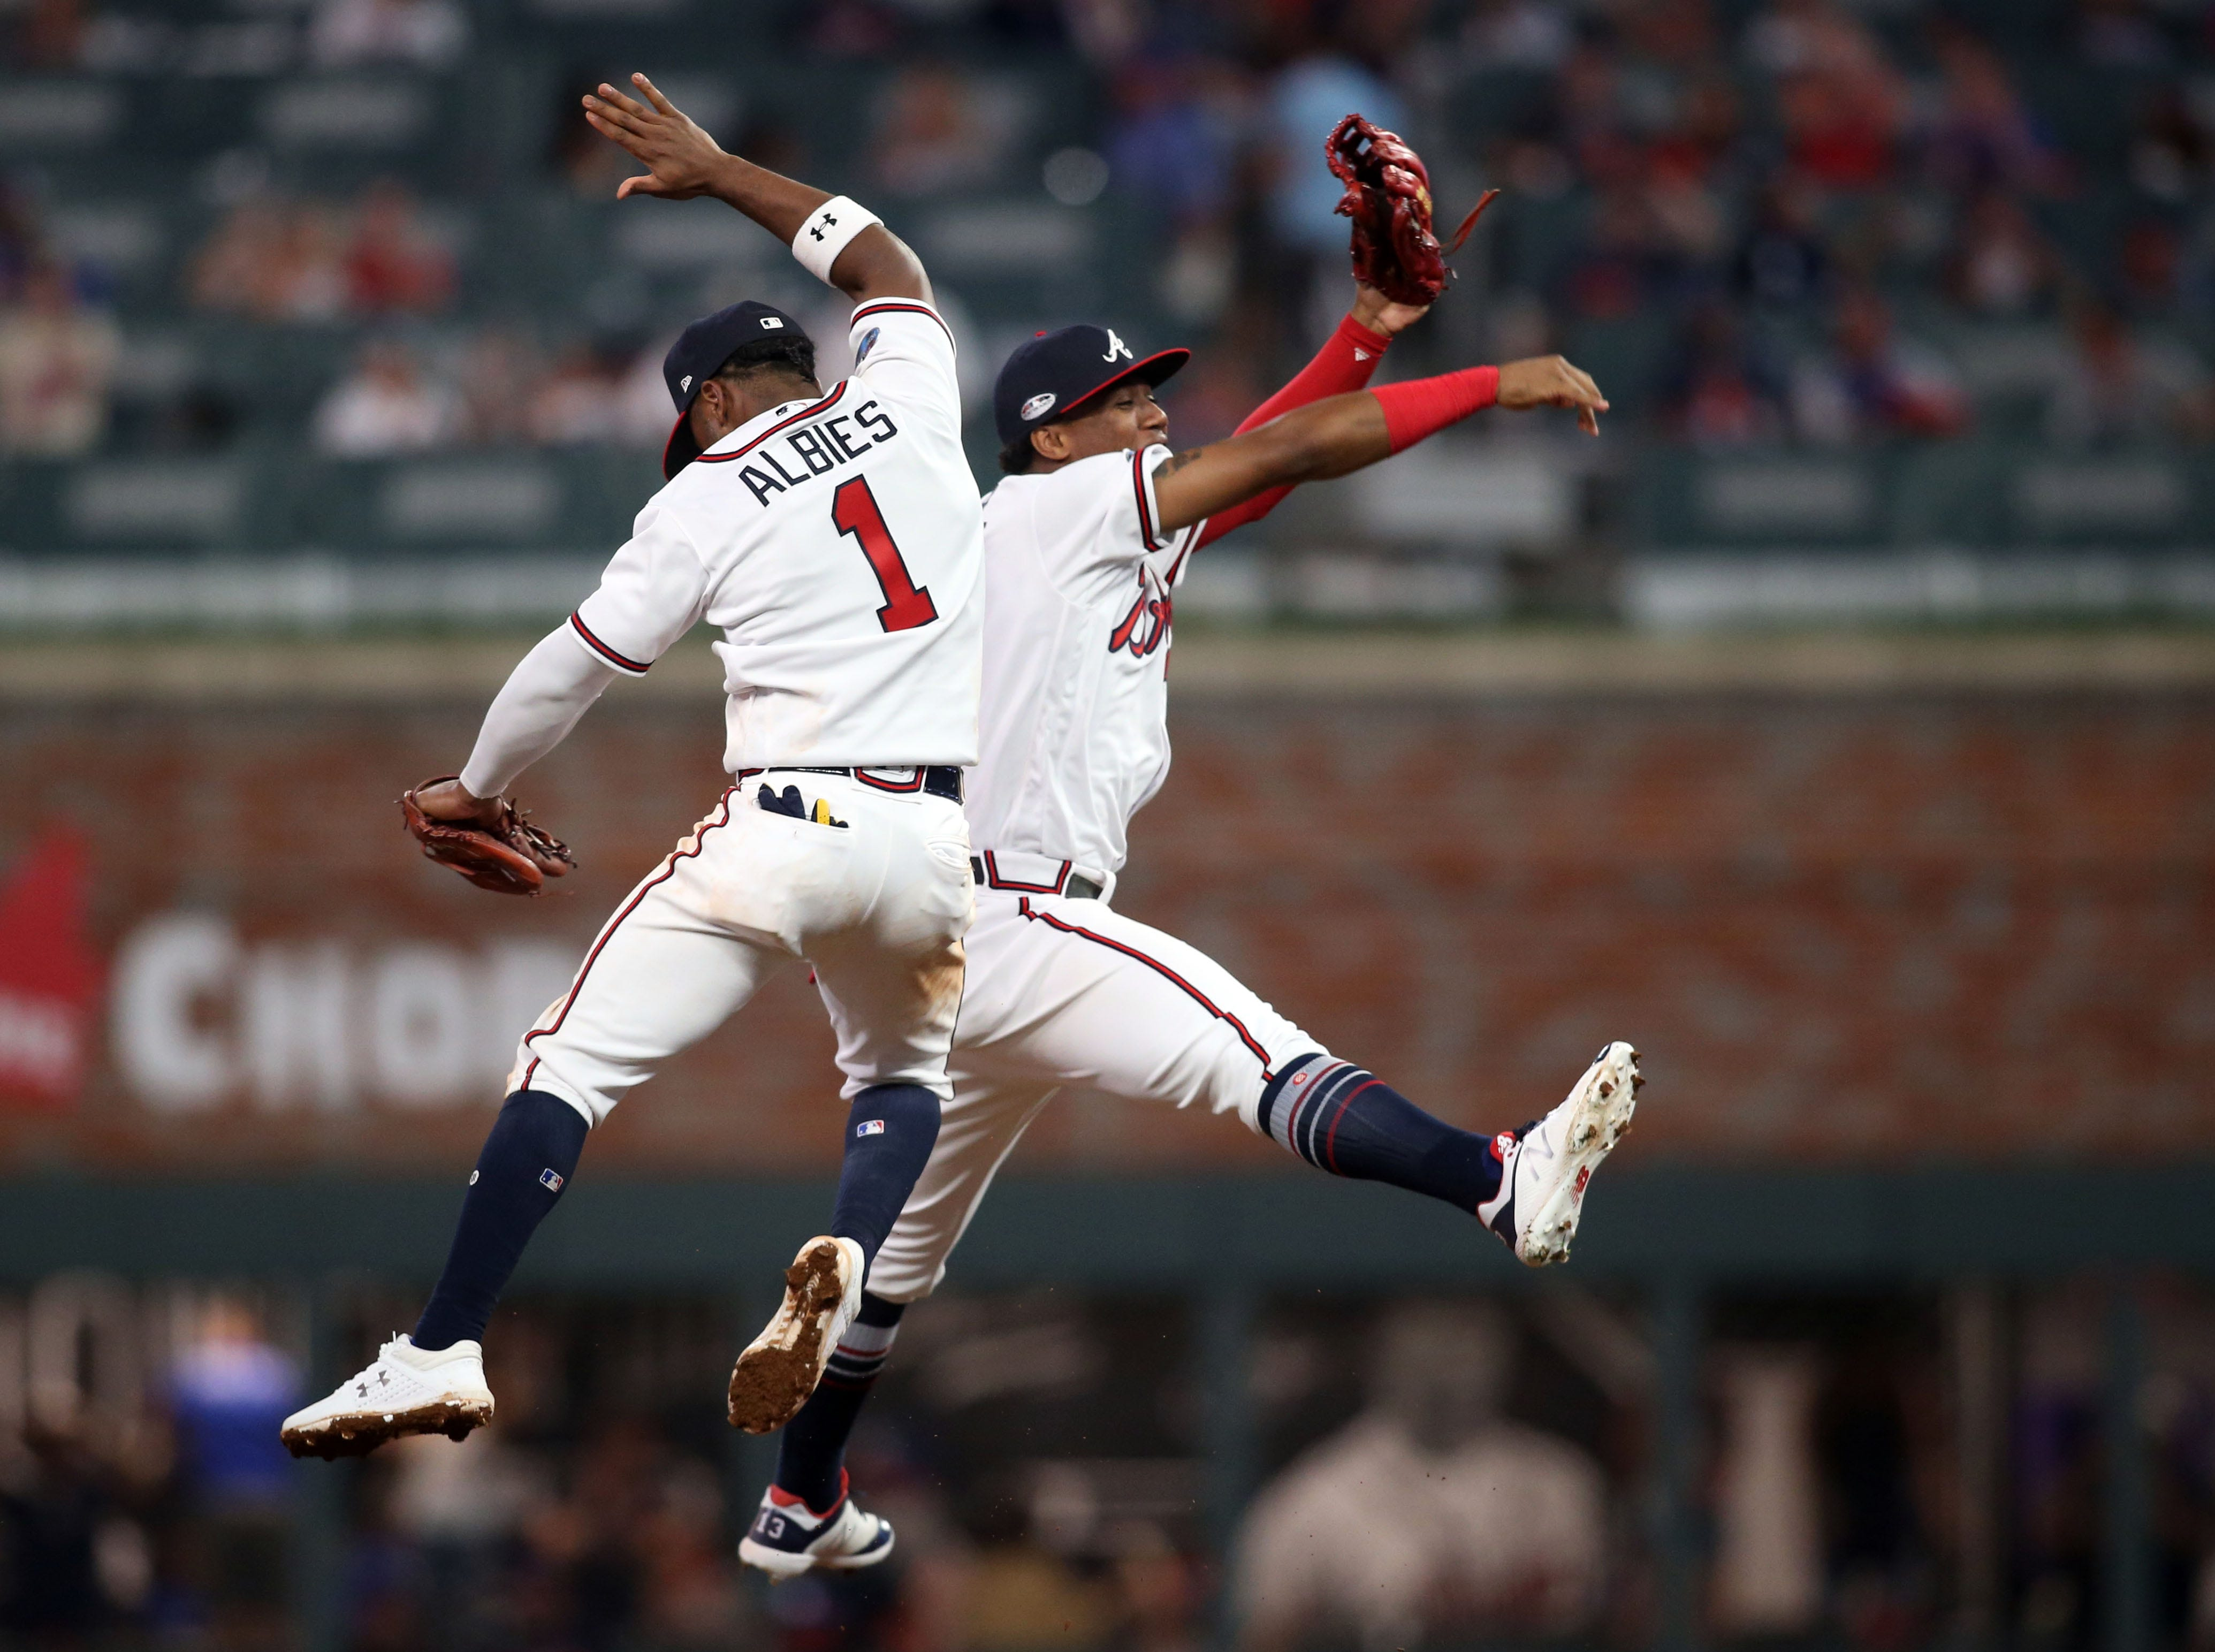 NLDS Game 3: Ozzie Albies and Ronald Acuna celebrate the Braves' win.